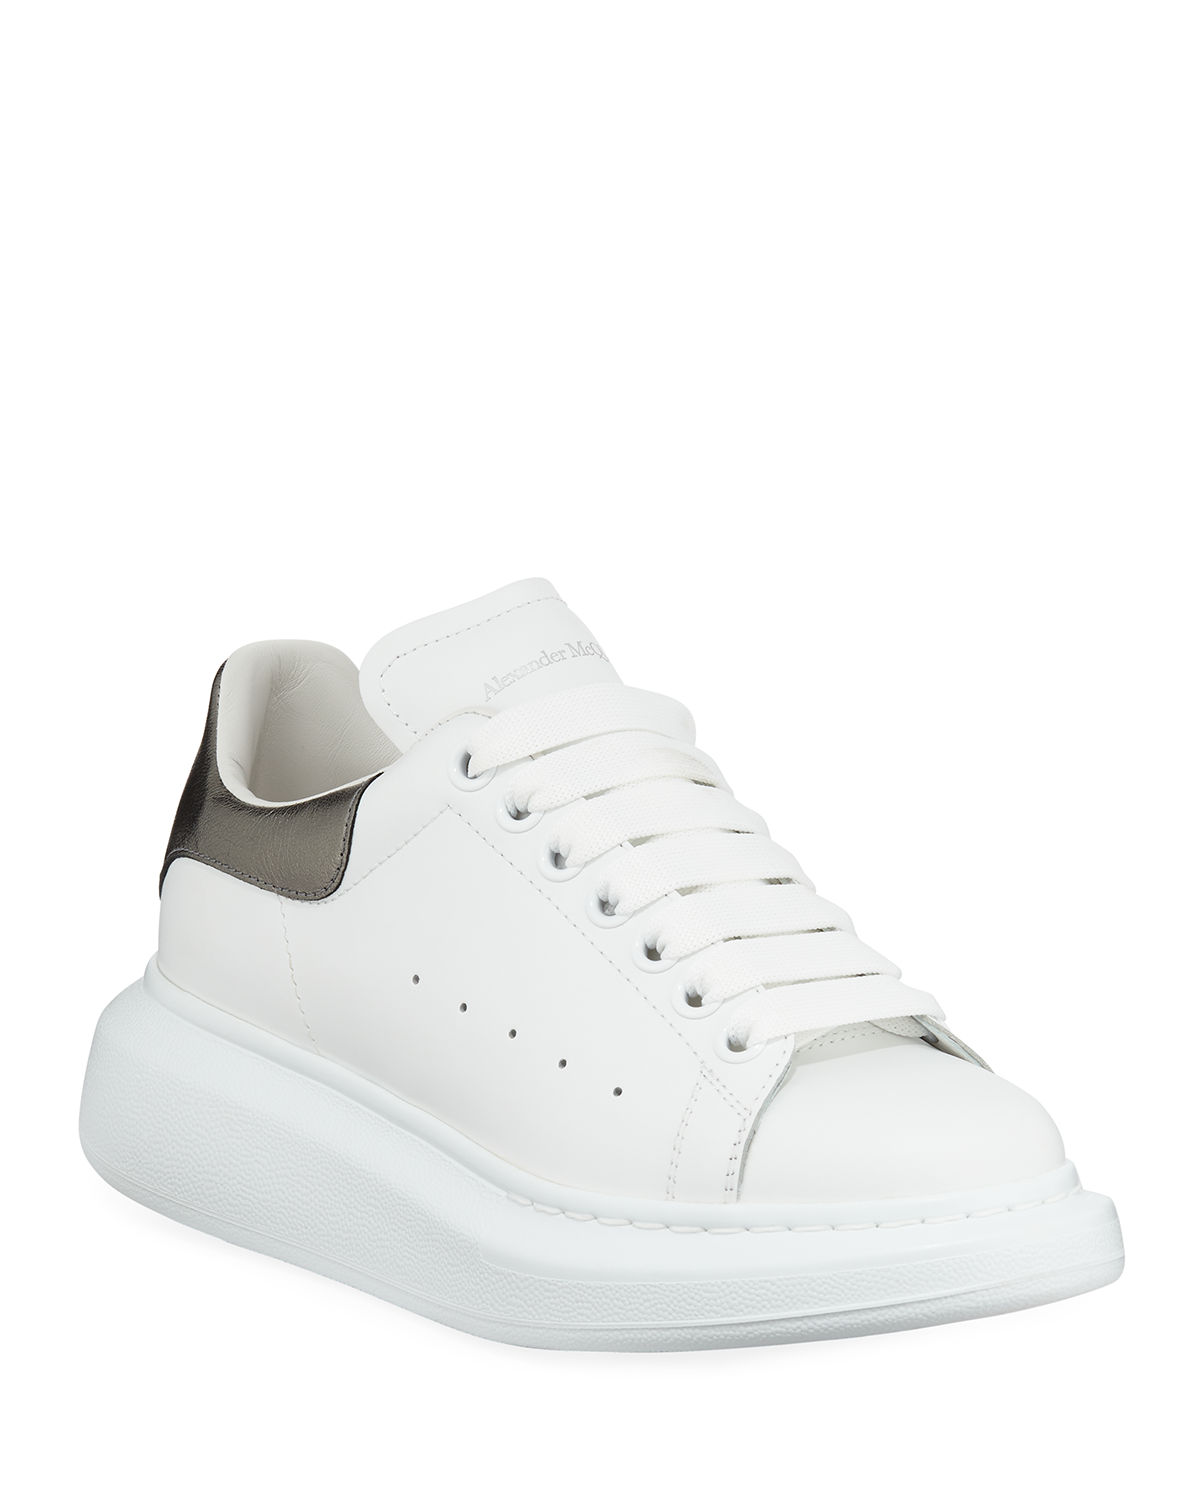 e4e505cb7866 Alexander McQueen Leather Lace-Up Platform Sneakers